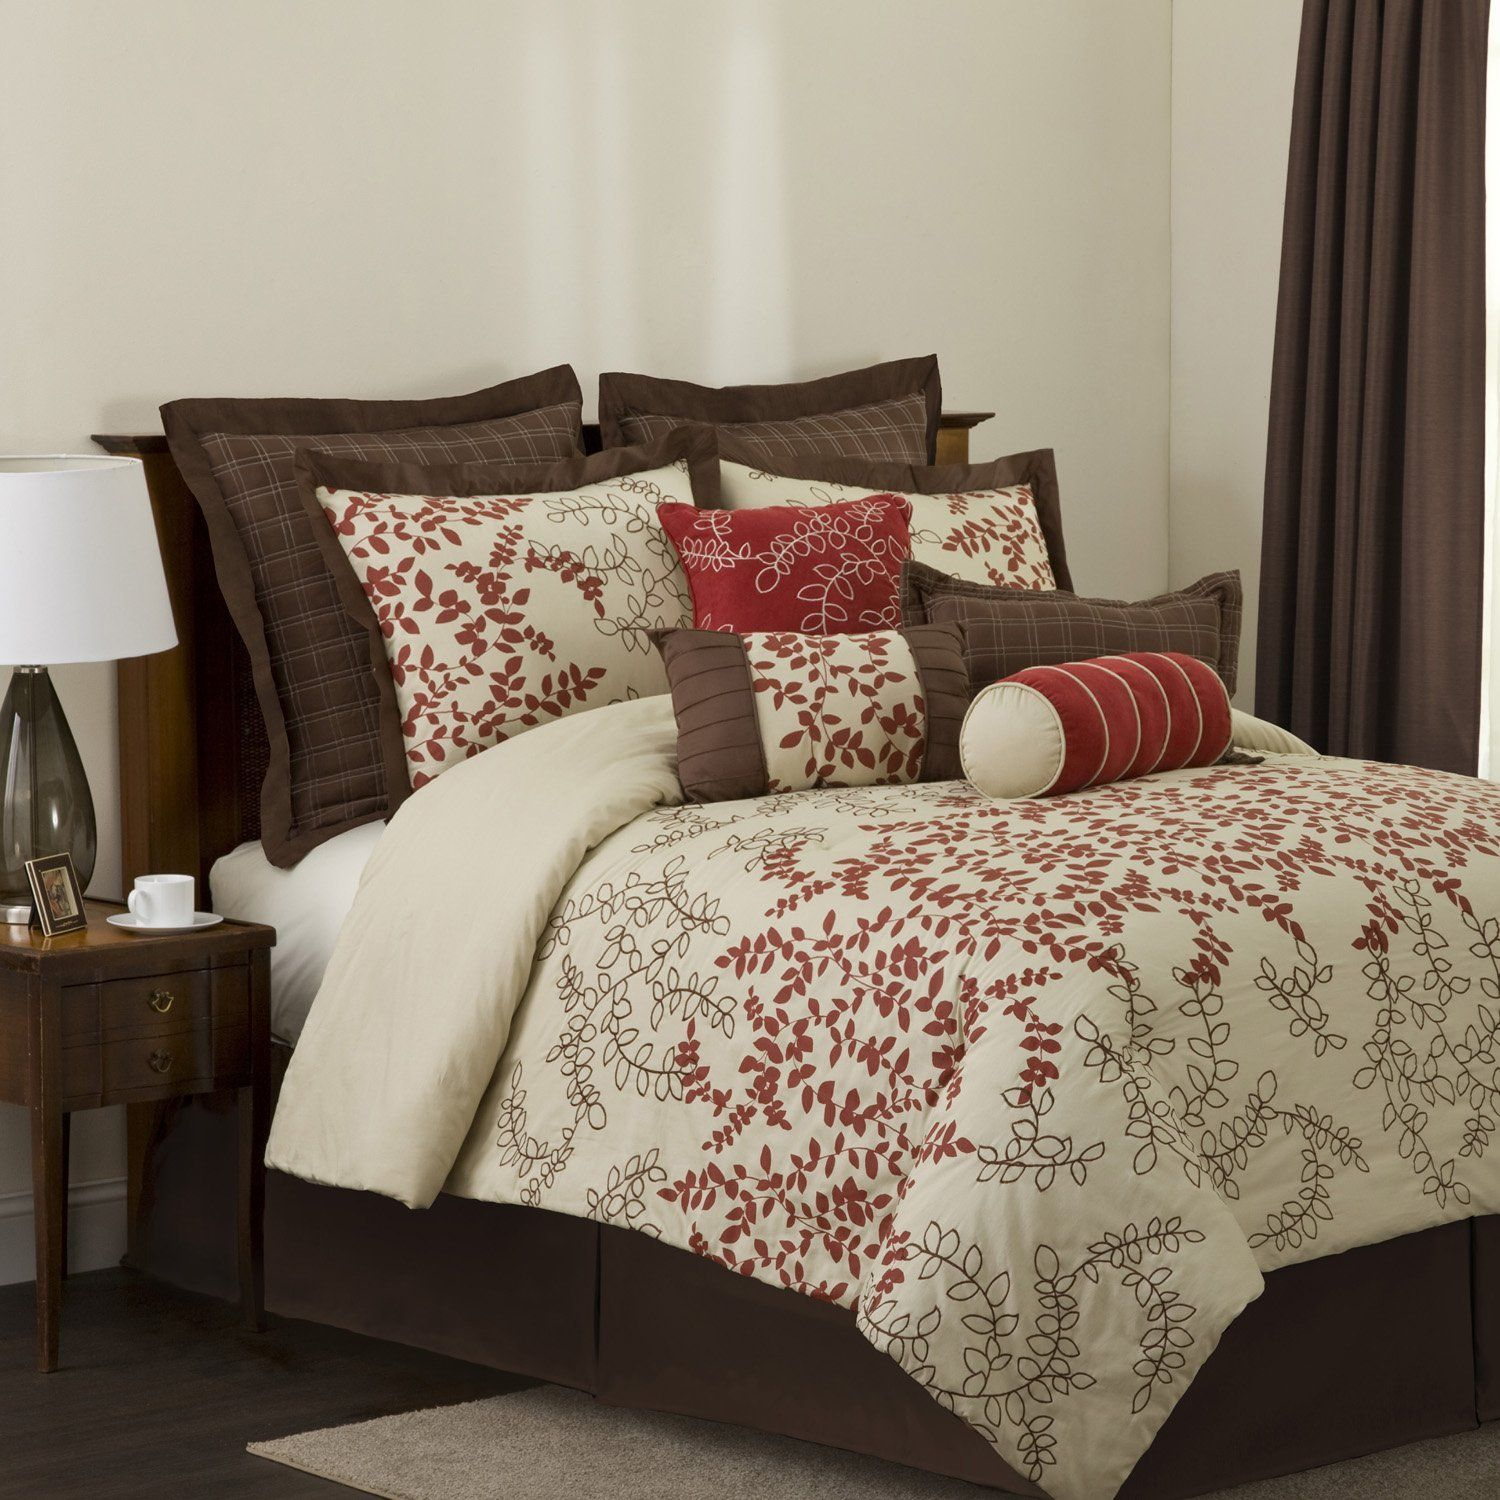 Brown and red bedroom - Lush Decor Hester 8 Piece Comforter Set Full Red Wheat Brown